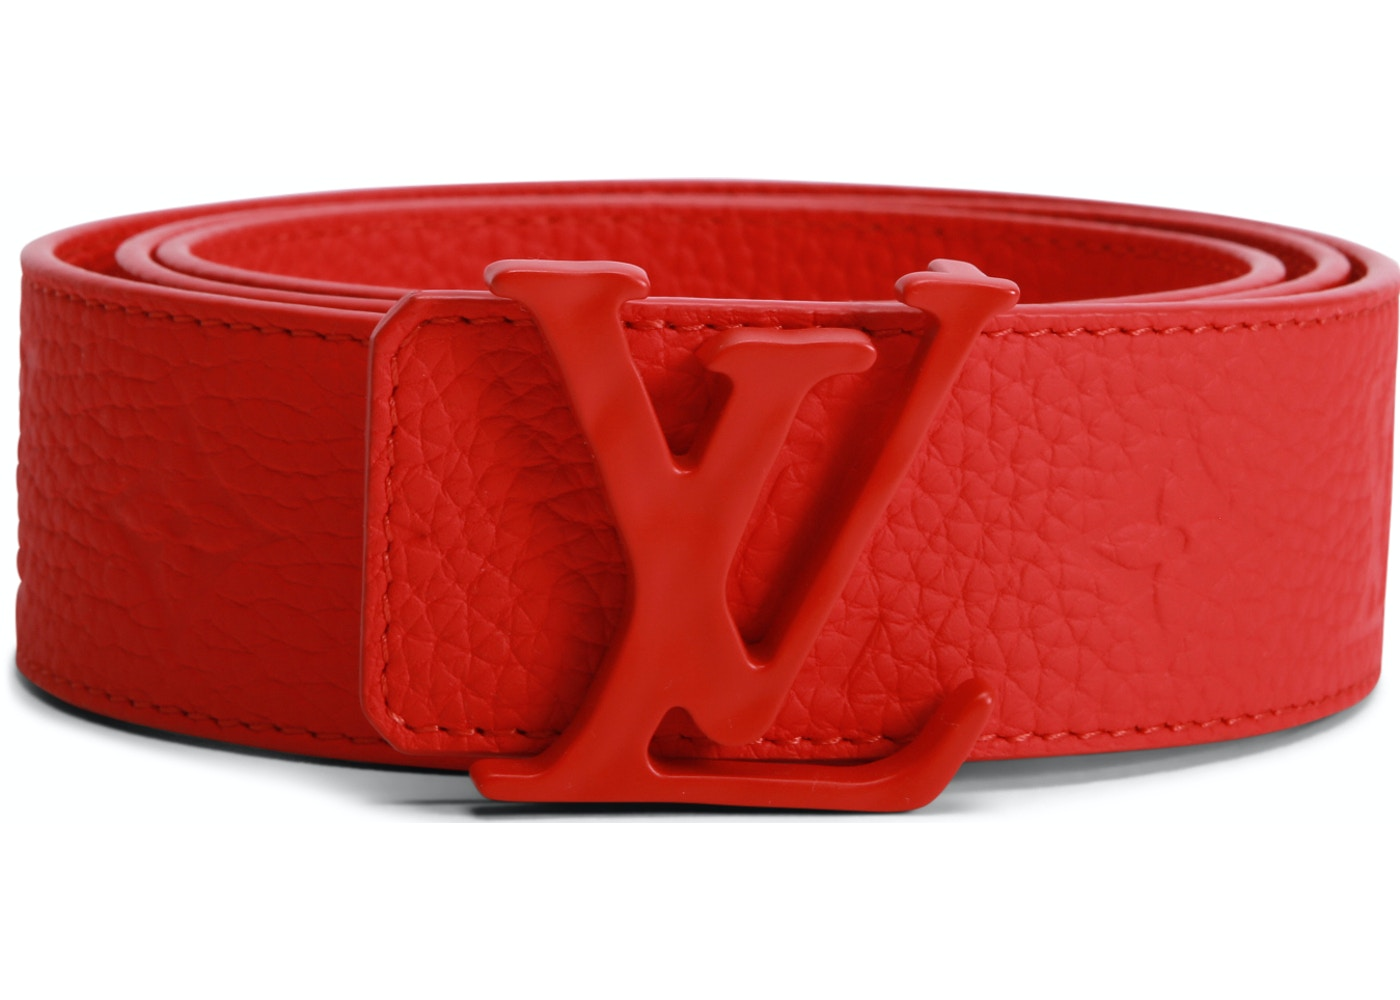 f7aa2602204 Louis Vuitton Initials Shape Belt Monogram 40MM Red. Monogram 40MM Red